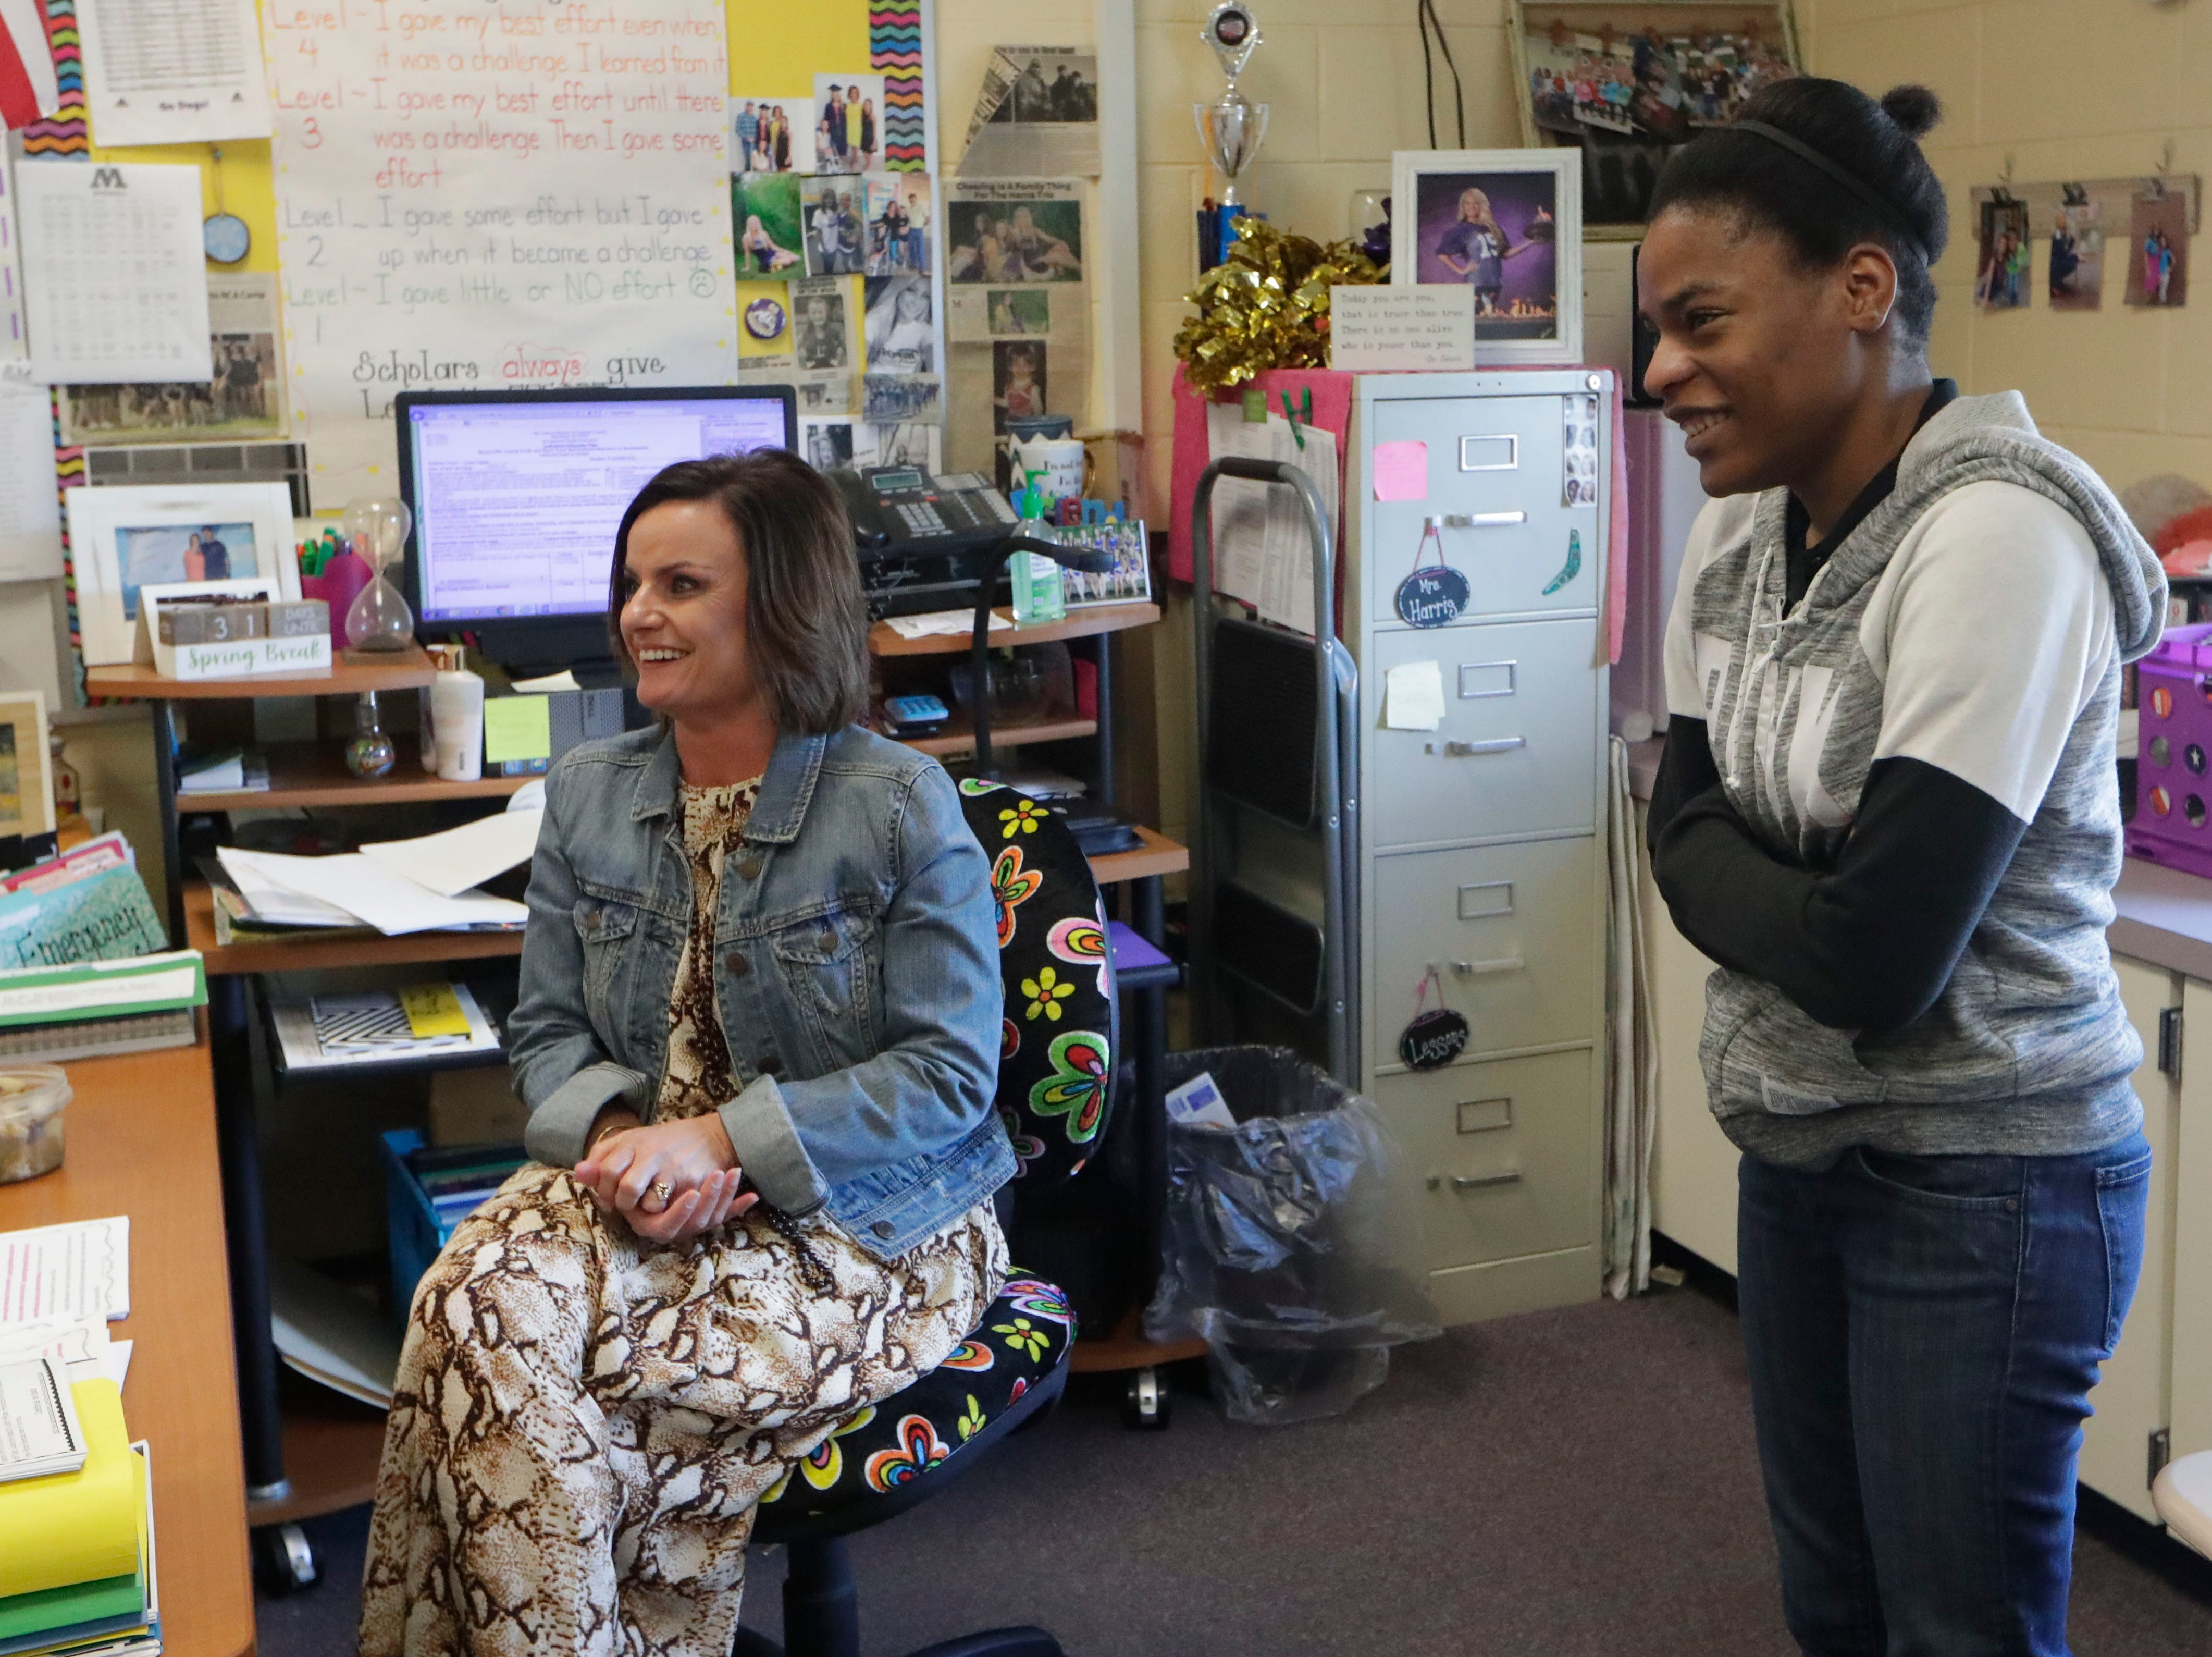 Jay-Hda McGriff, right, shares why Brandi Harris, left, is her favorite teacher at Marianna High School, Thursday Feb. 7, 2019. Harris has helped McGriff and her family since Hurricane Michael left them without a home and even more so since the passing of McGriff's mother in late January 2019.